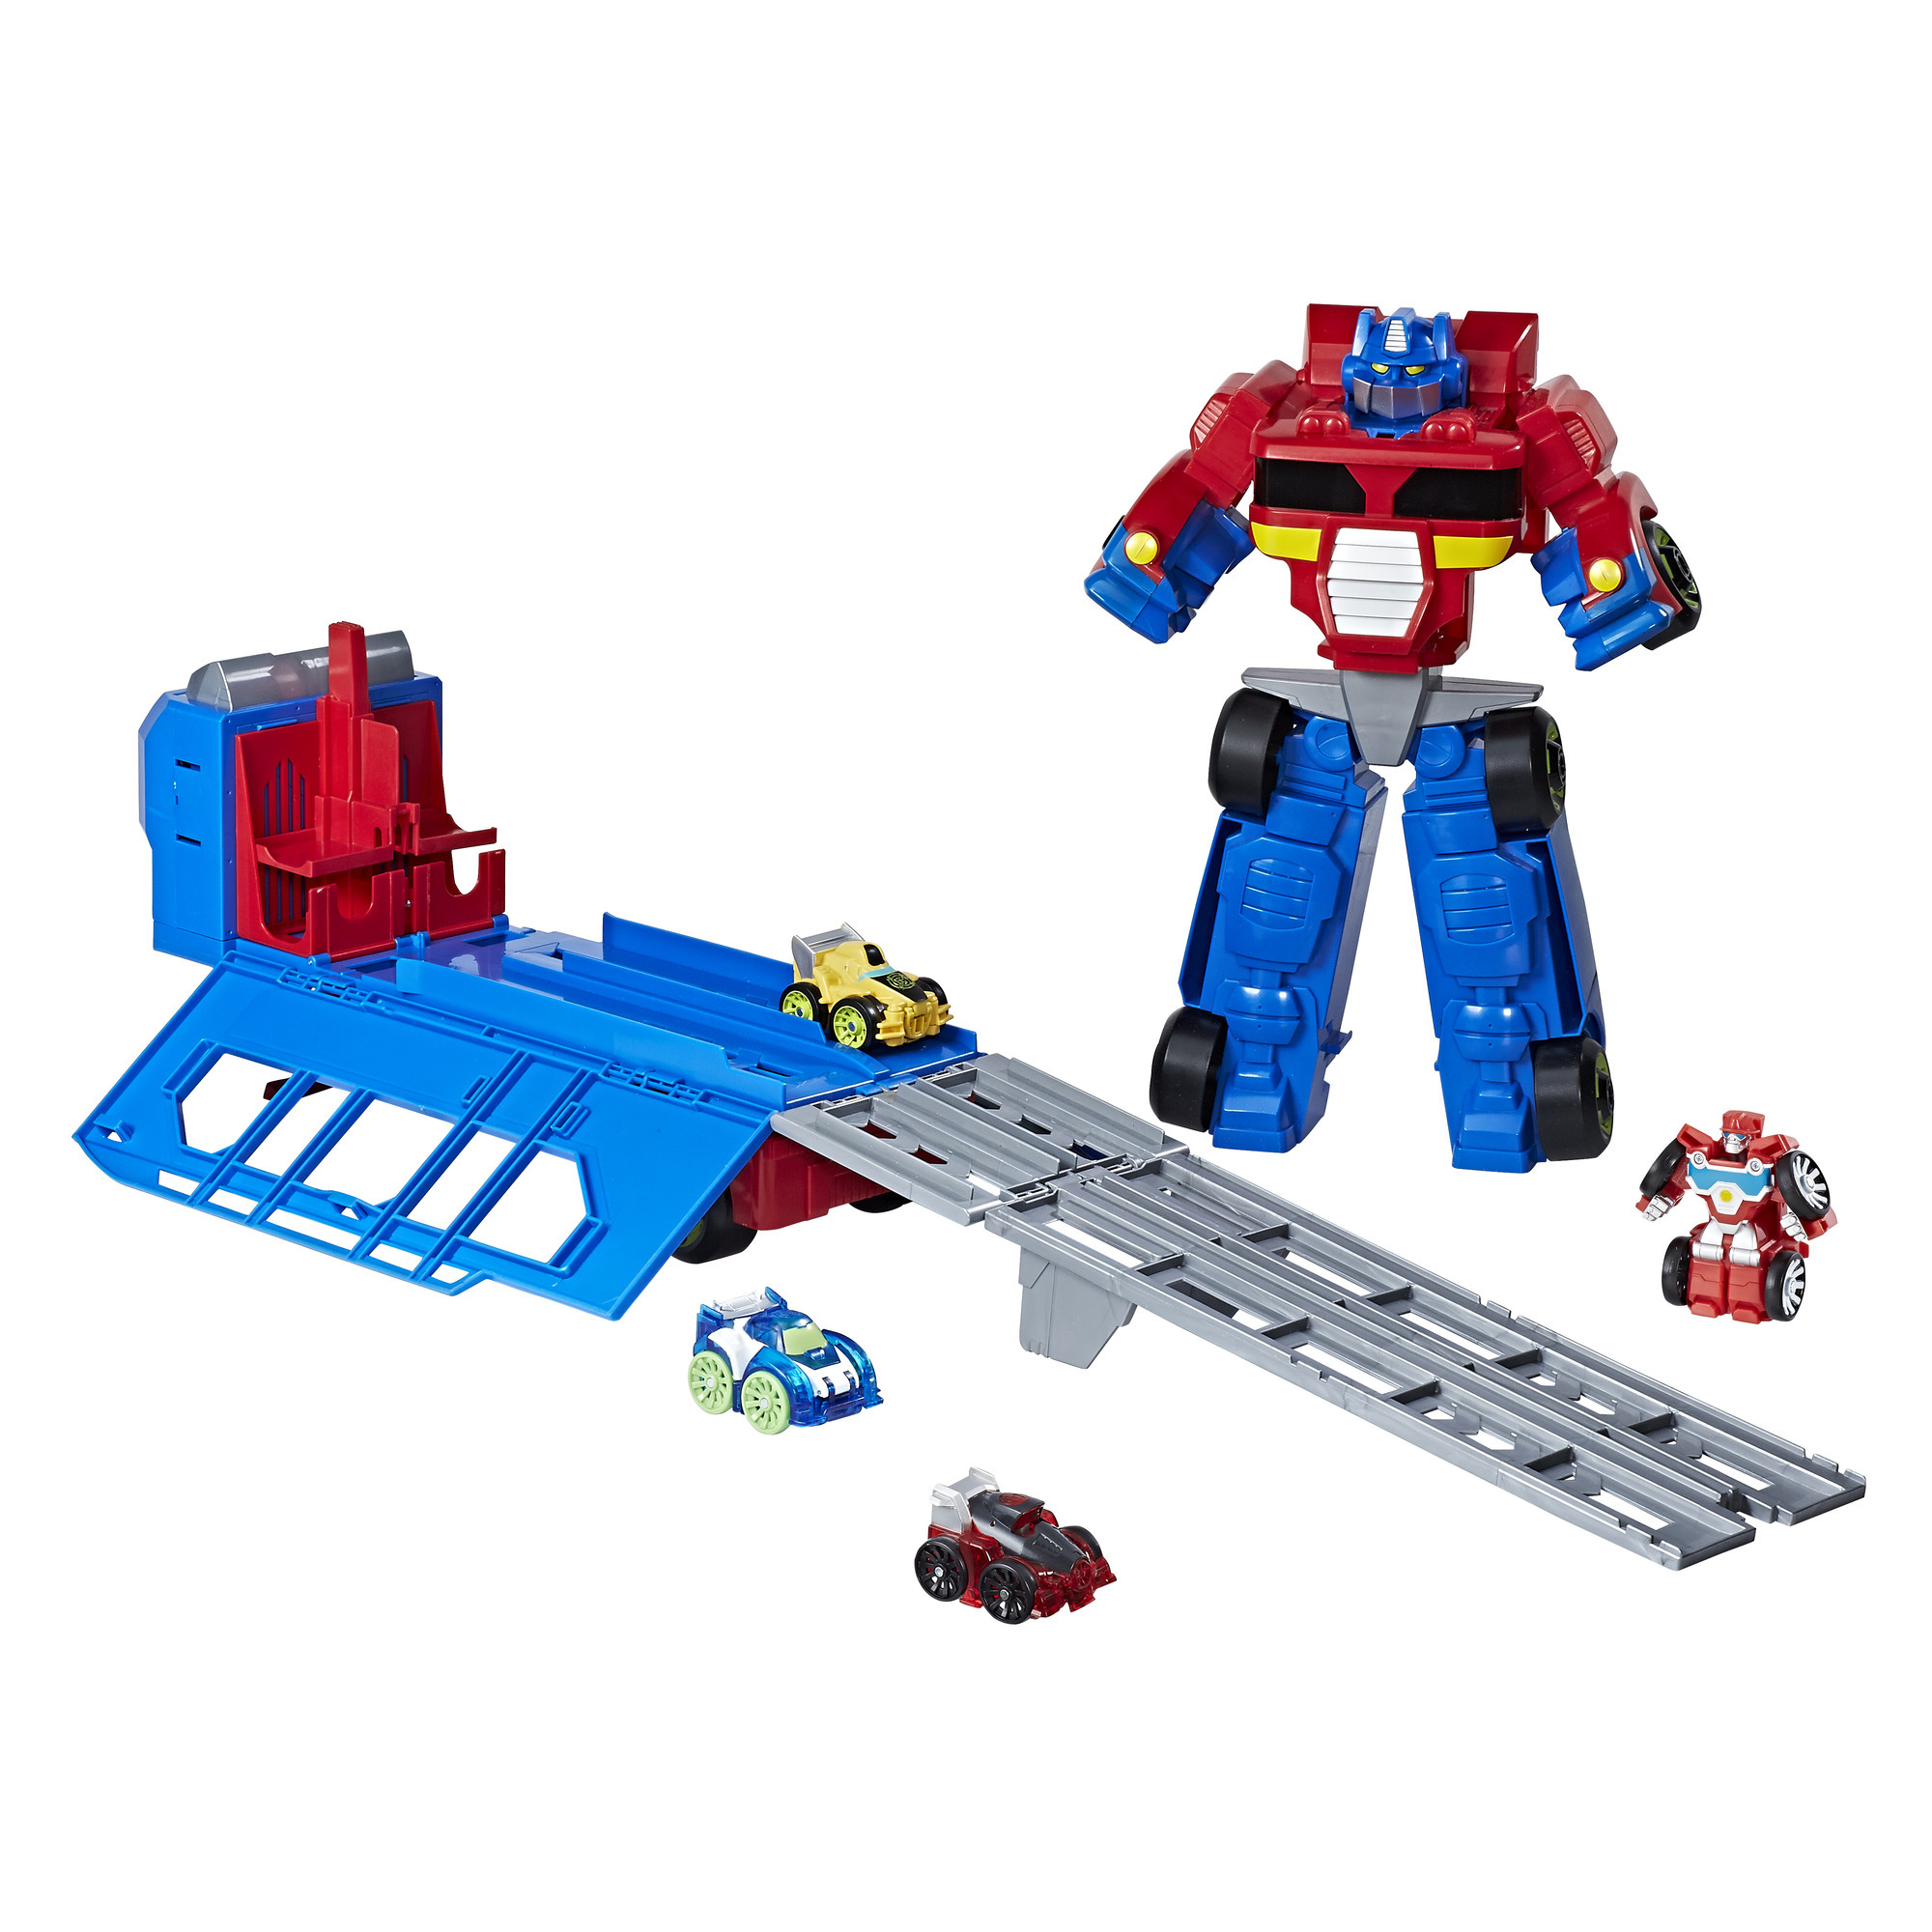 Transformers Rescue Bots Flip Racers Optimus Prime Race Track Trailer by Hasbro